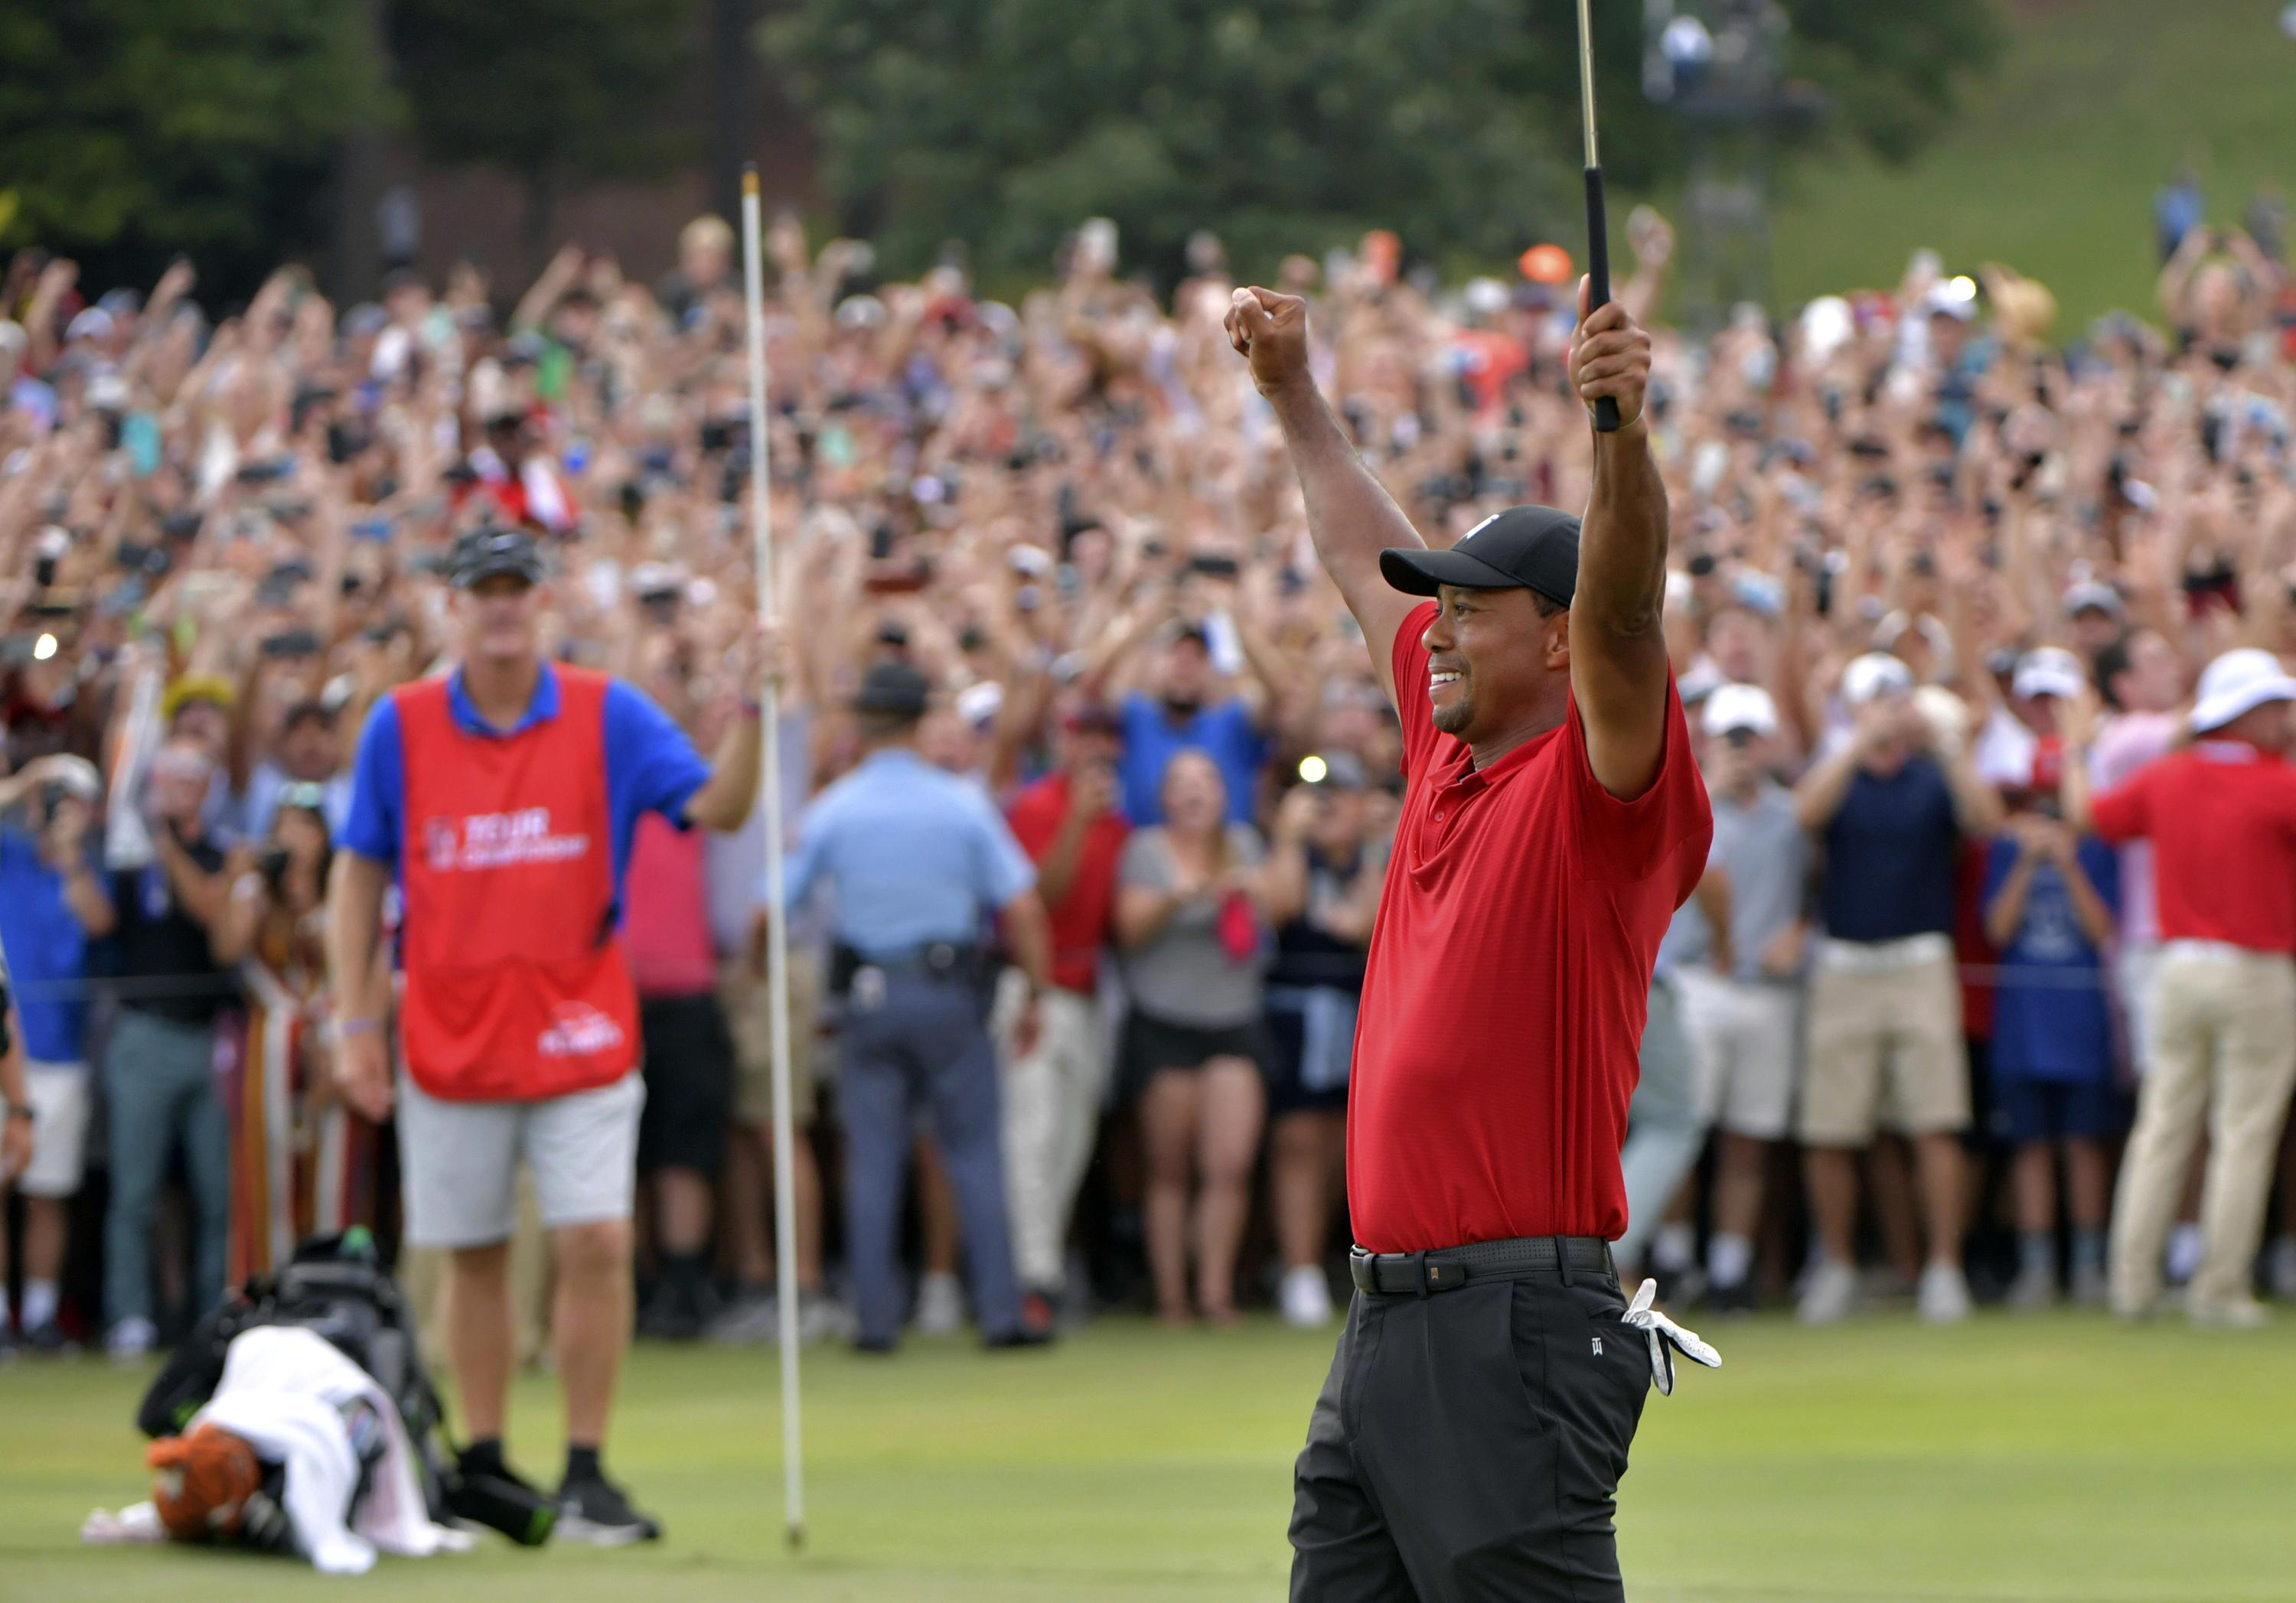 Bild zu Tiger Woods, Tour Championship, Atlanta, USA, Sieg, Jubel, 2018